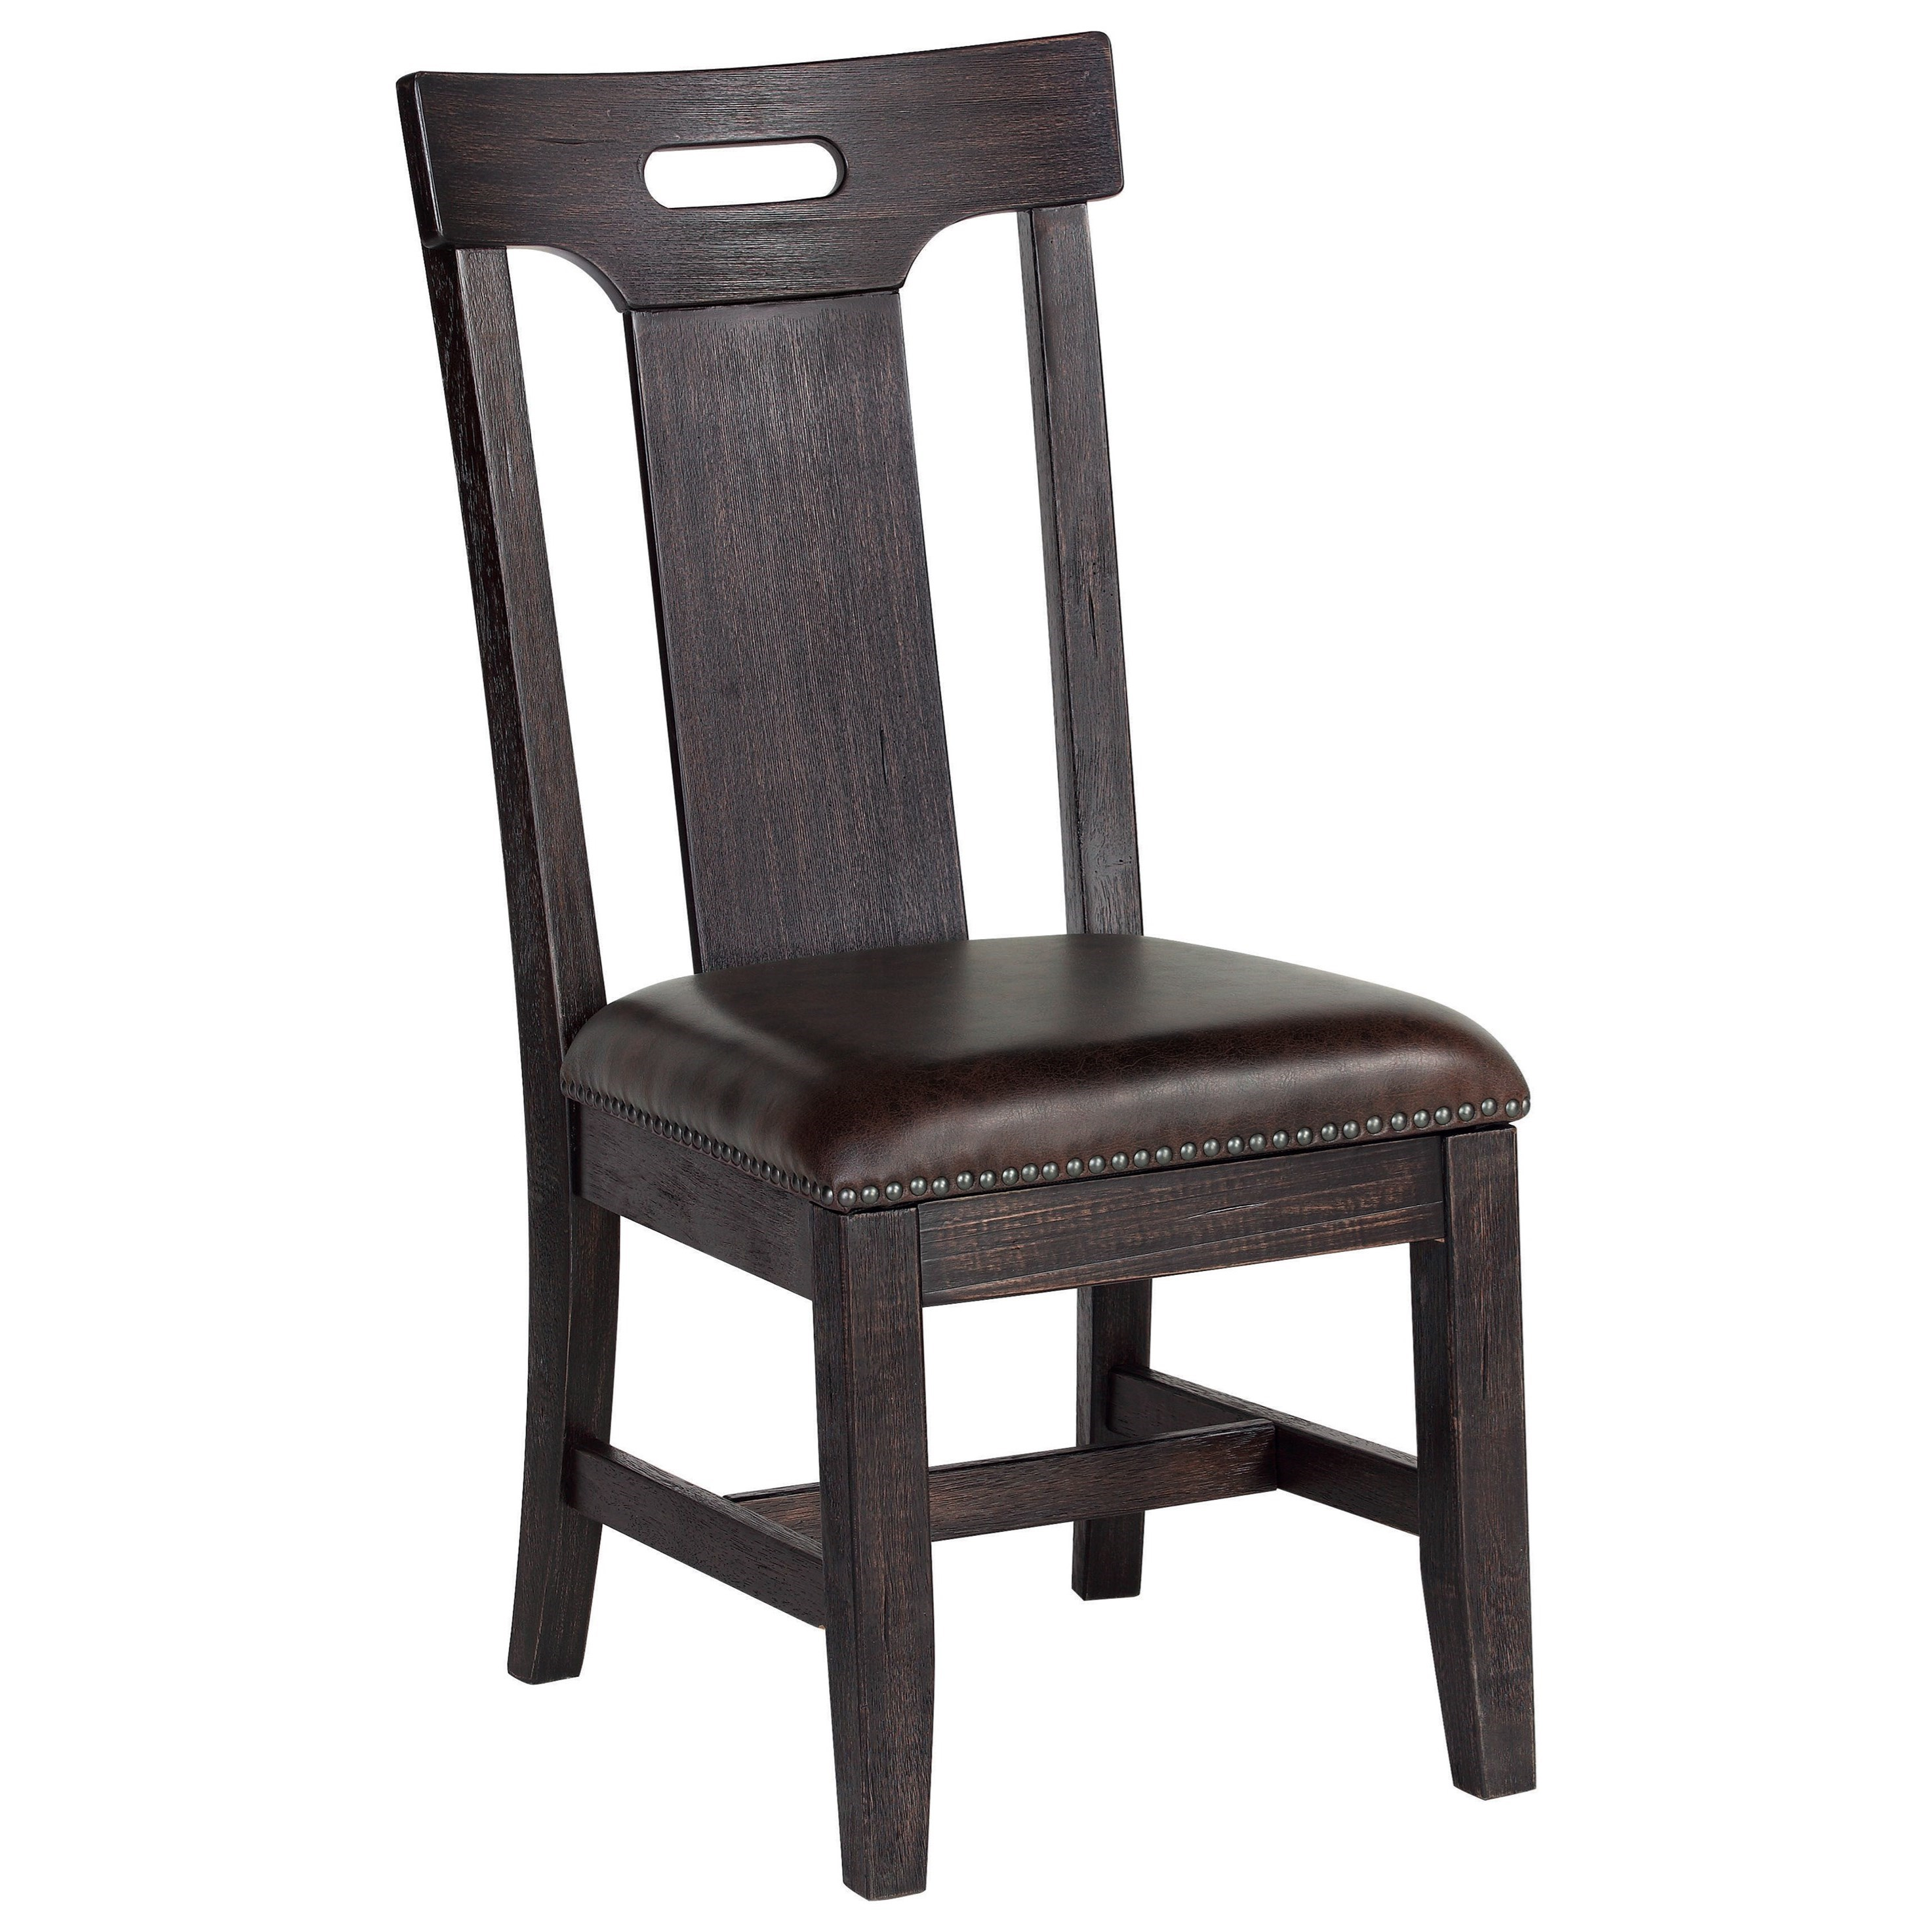 Furniture City Brewing - Stout Side Chair by Samuel Lawrence at Nassau Furniture and Mattress